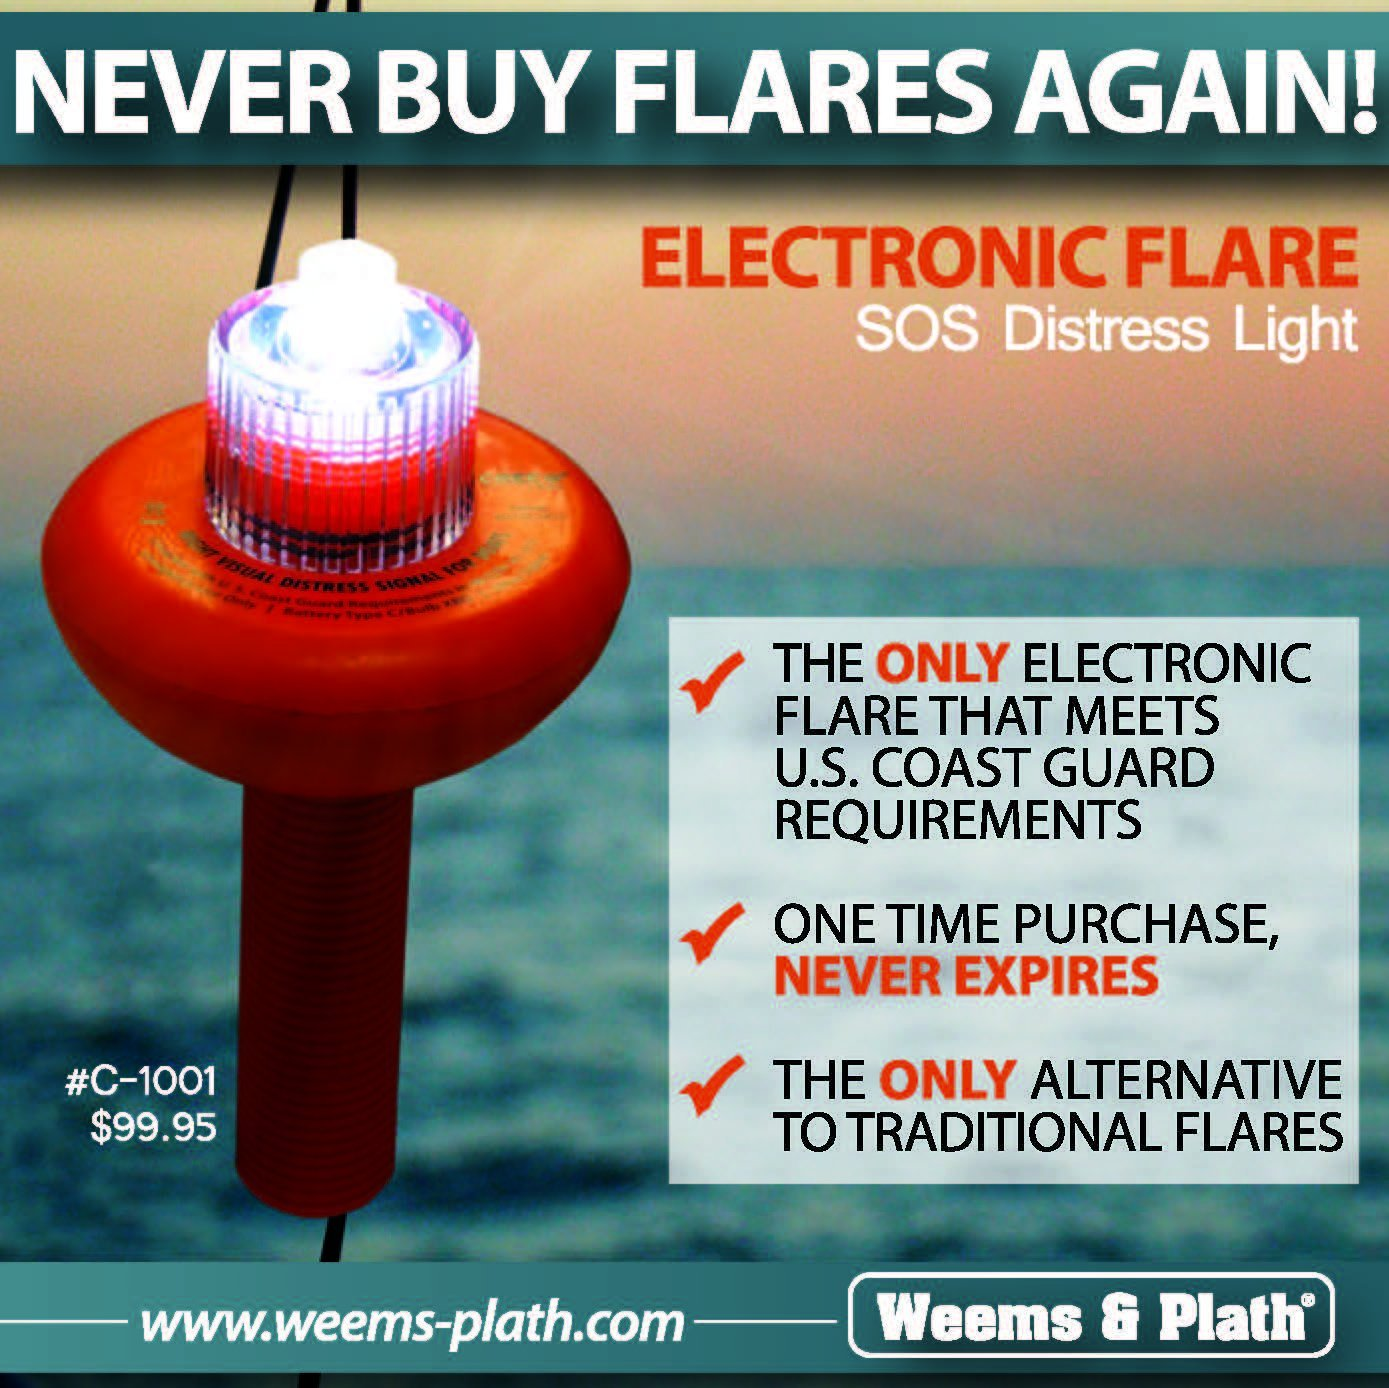 Weems Plath C 1001 Sos Distress Light With Day Signal Navigation Switching For Vessels Under 20 Meters Blue Sea Flag Automotive